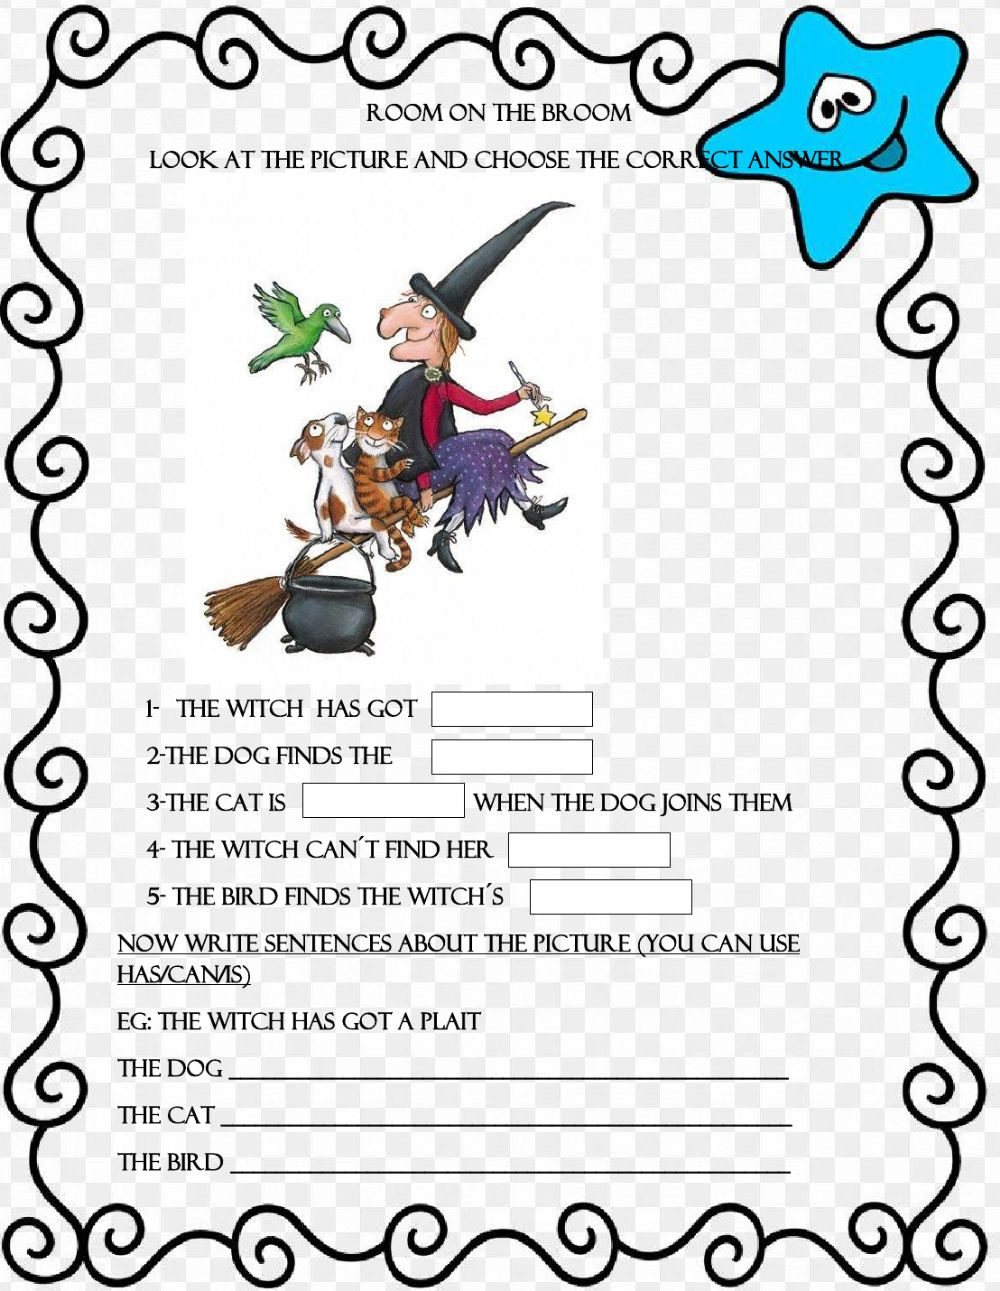 hight resolution of Room on the broom worksheet for 2nd grade